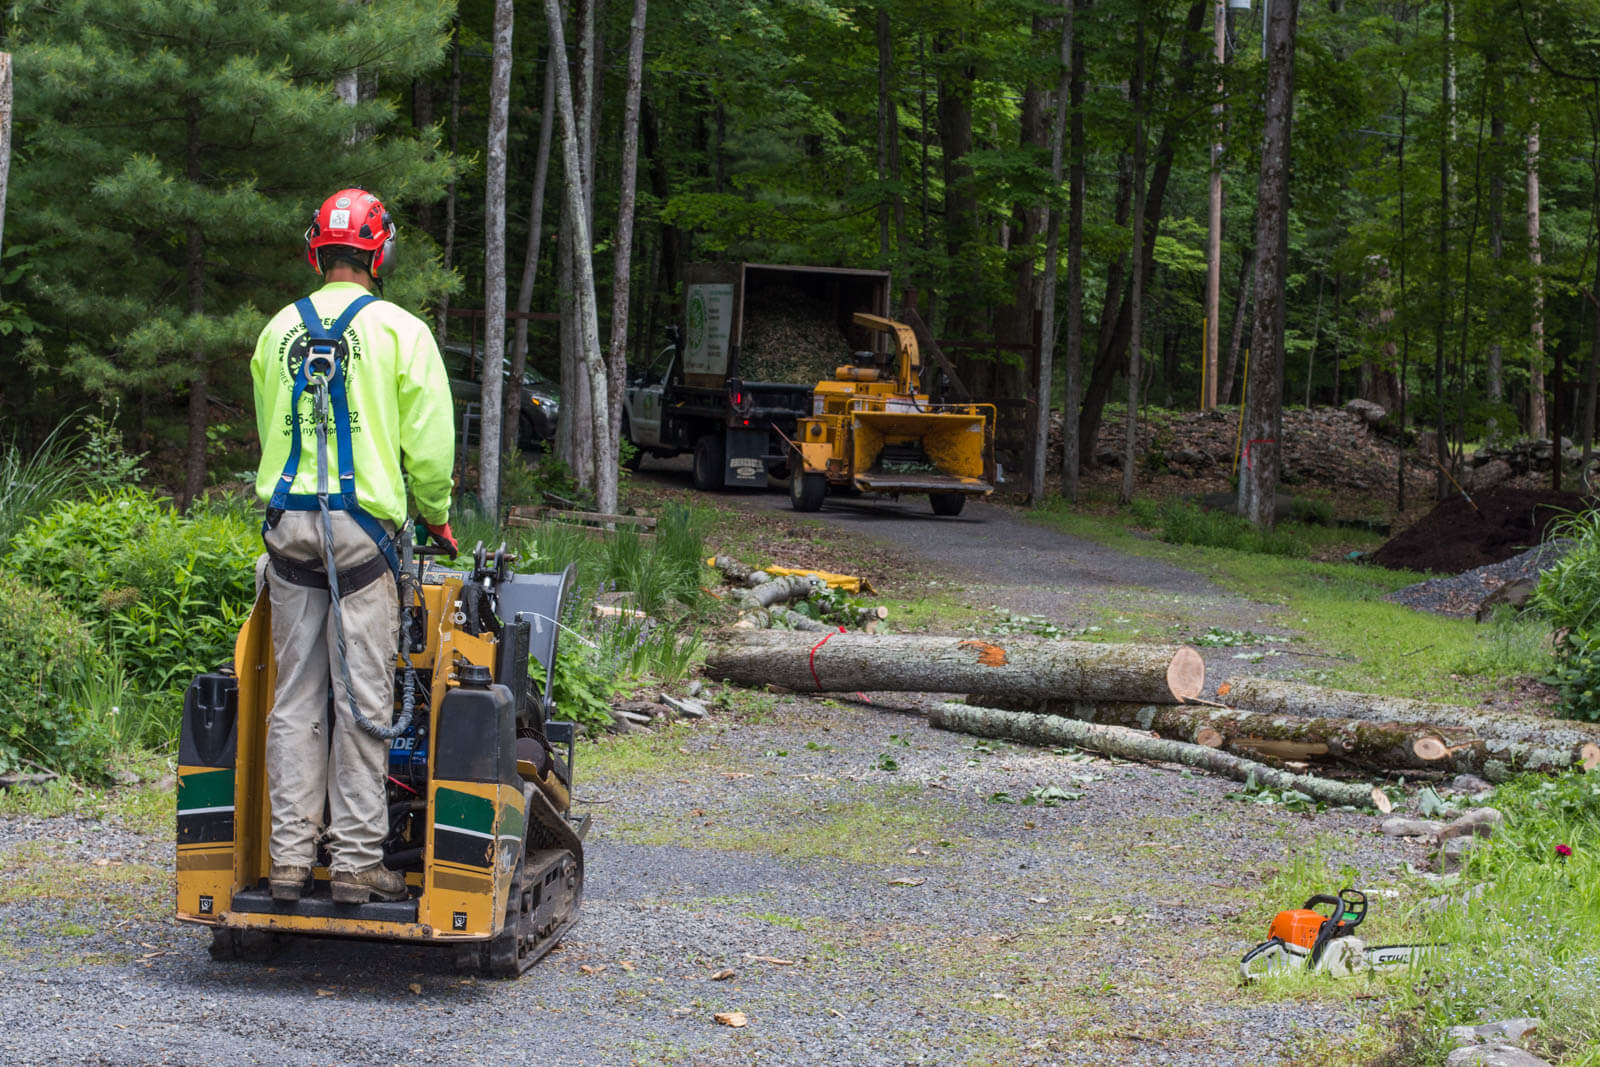 Emergency Tree Removal-Santee CA Tree Trimming and Stump Grinding Services-We Offer Tree Trimming Services, Tree Removal, Tree Pruning, Tree Cutting, Residential and Commercial Tree Trimming Services, Storm Damage, Emergency Tree Removal, Land Clearing, Tree Companies, Tree Care Service, Stump Grinding, and we're the Best Tree Trimming Company Near You Guaranteed!